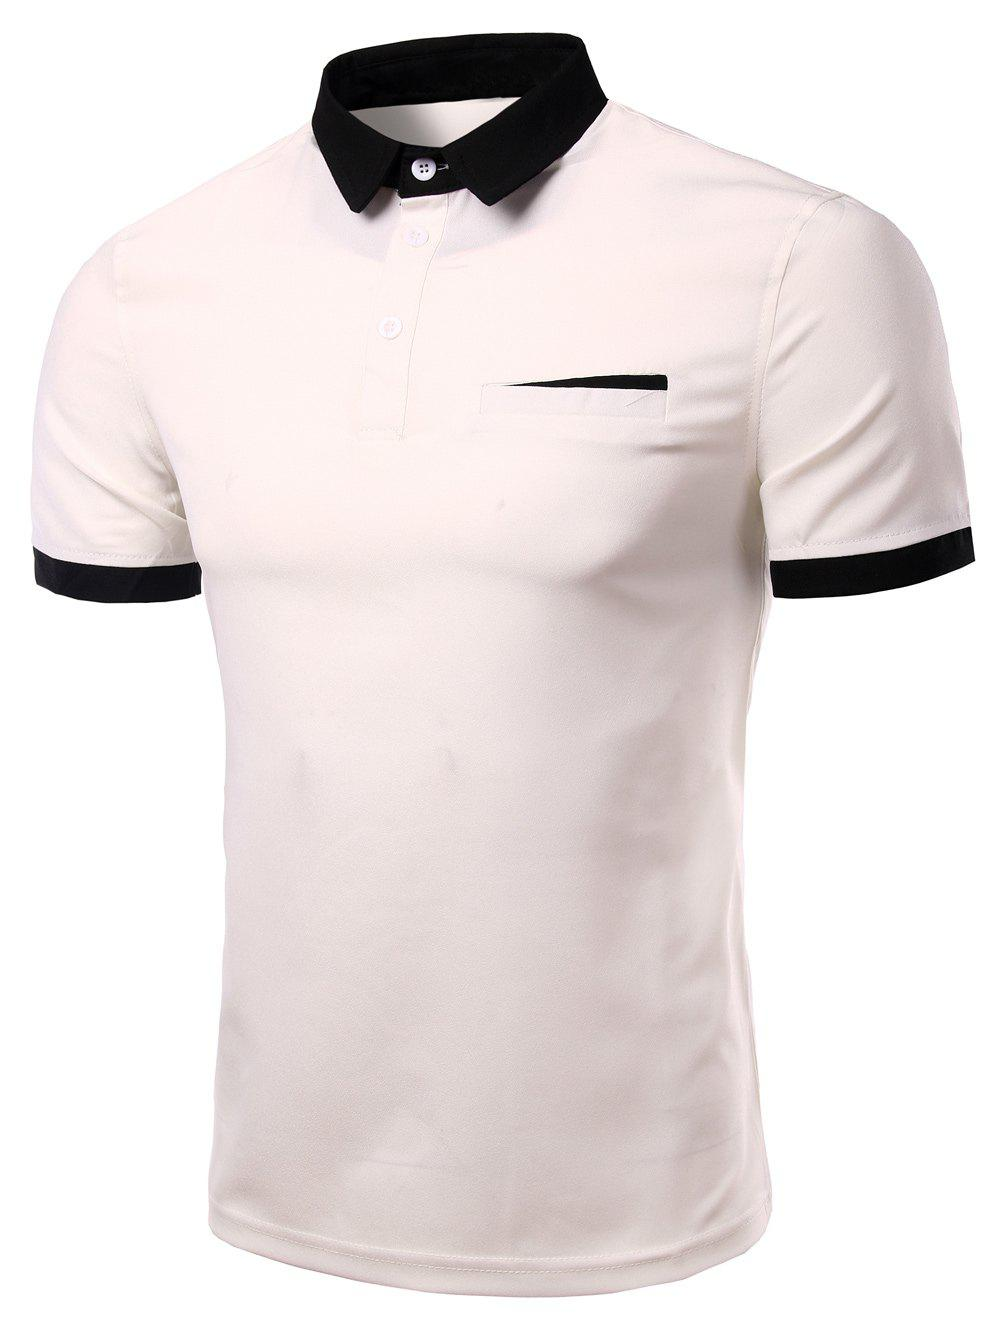 Men's Fashion Turn-down Collar Solid Color Short Sleeves Polo T-Shirt - WHITE 3XL